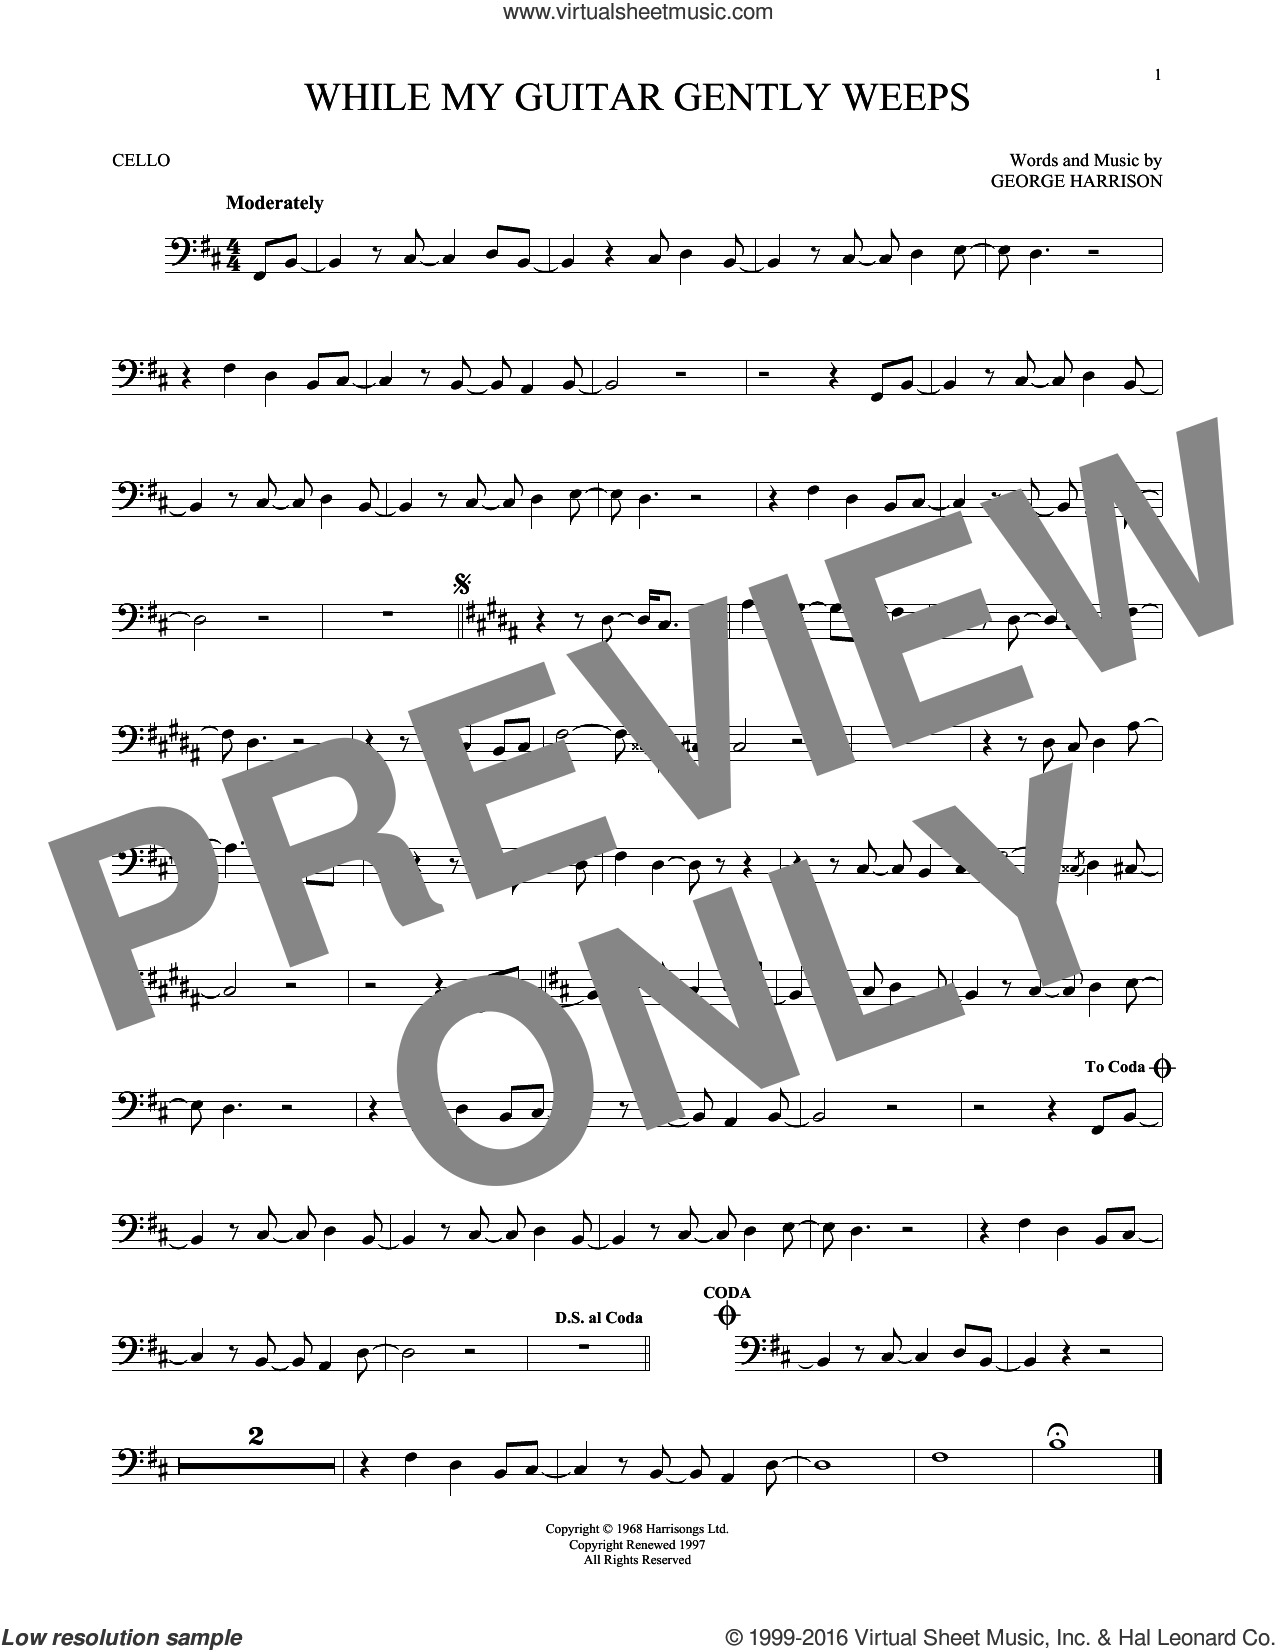 While My Guitar Gently Weeps sheet music for cello solo by The Beatles, Santana featuring India.Arie & Yo-Yo Ma and George Harrison, intermediate skill level